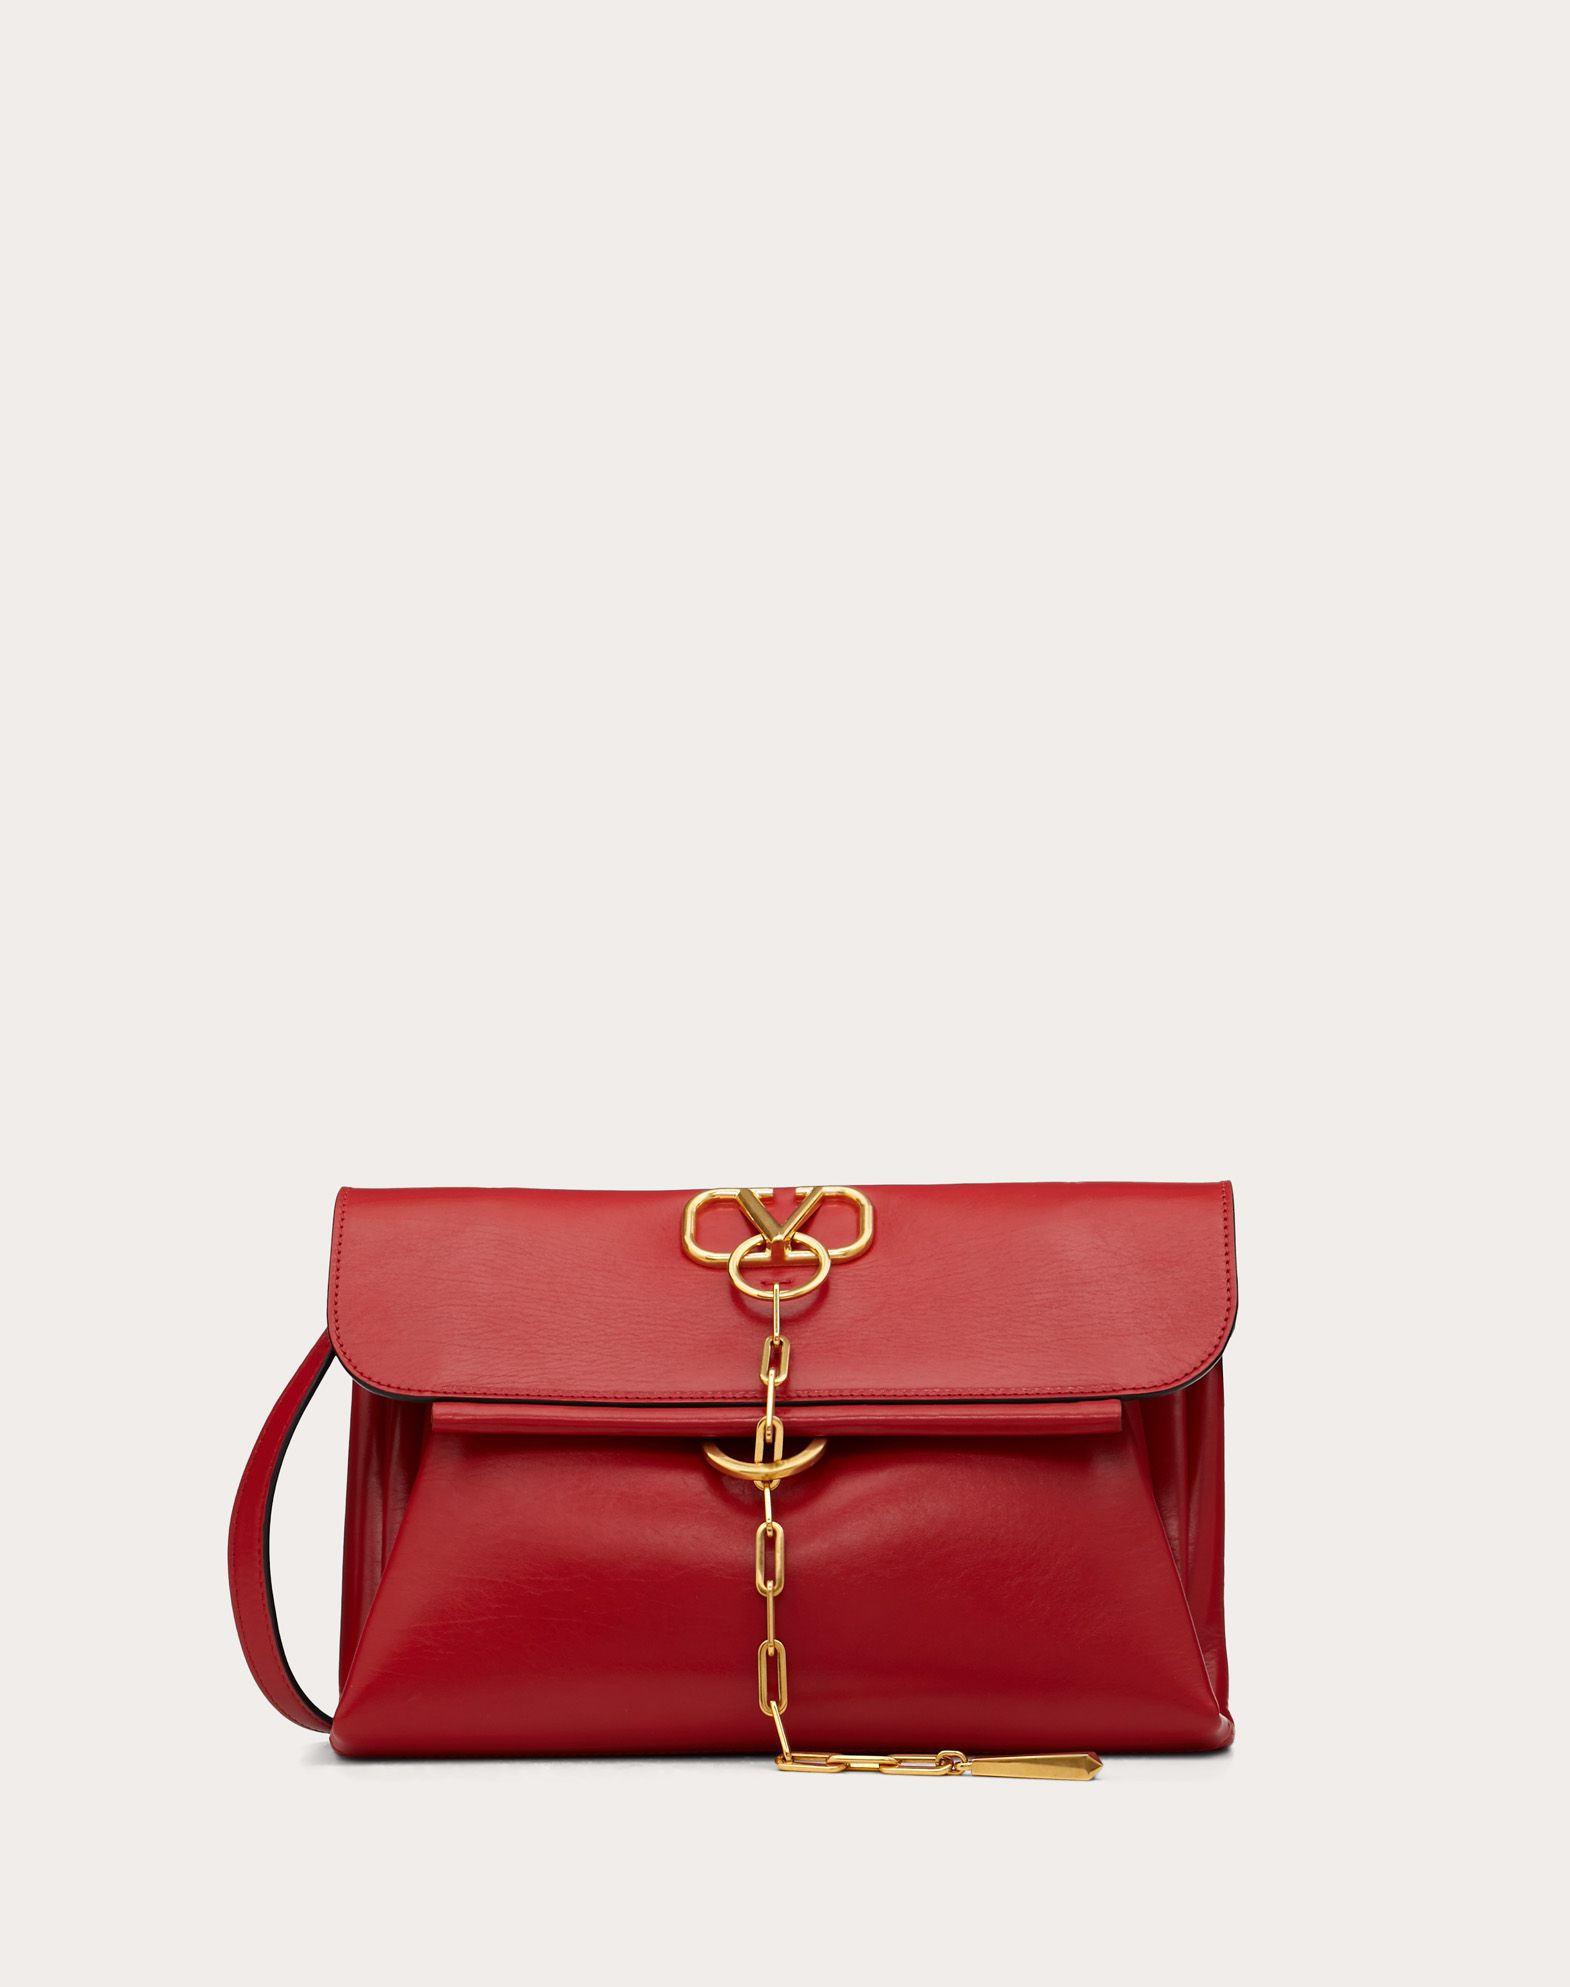 VCHAIN Smooth Calfskin Crossbody Bag